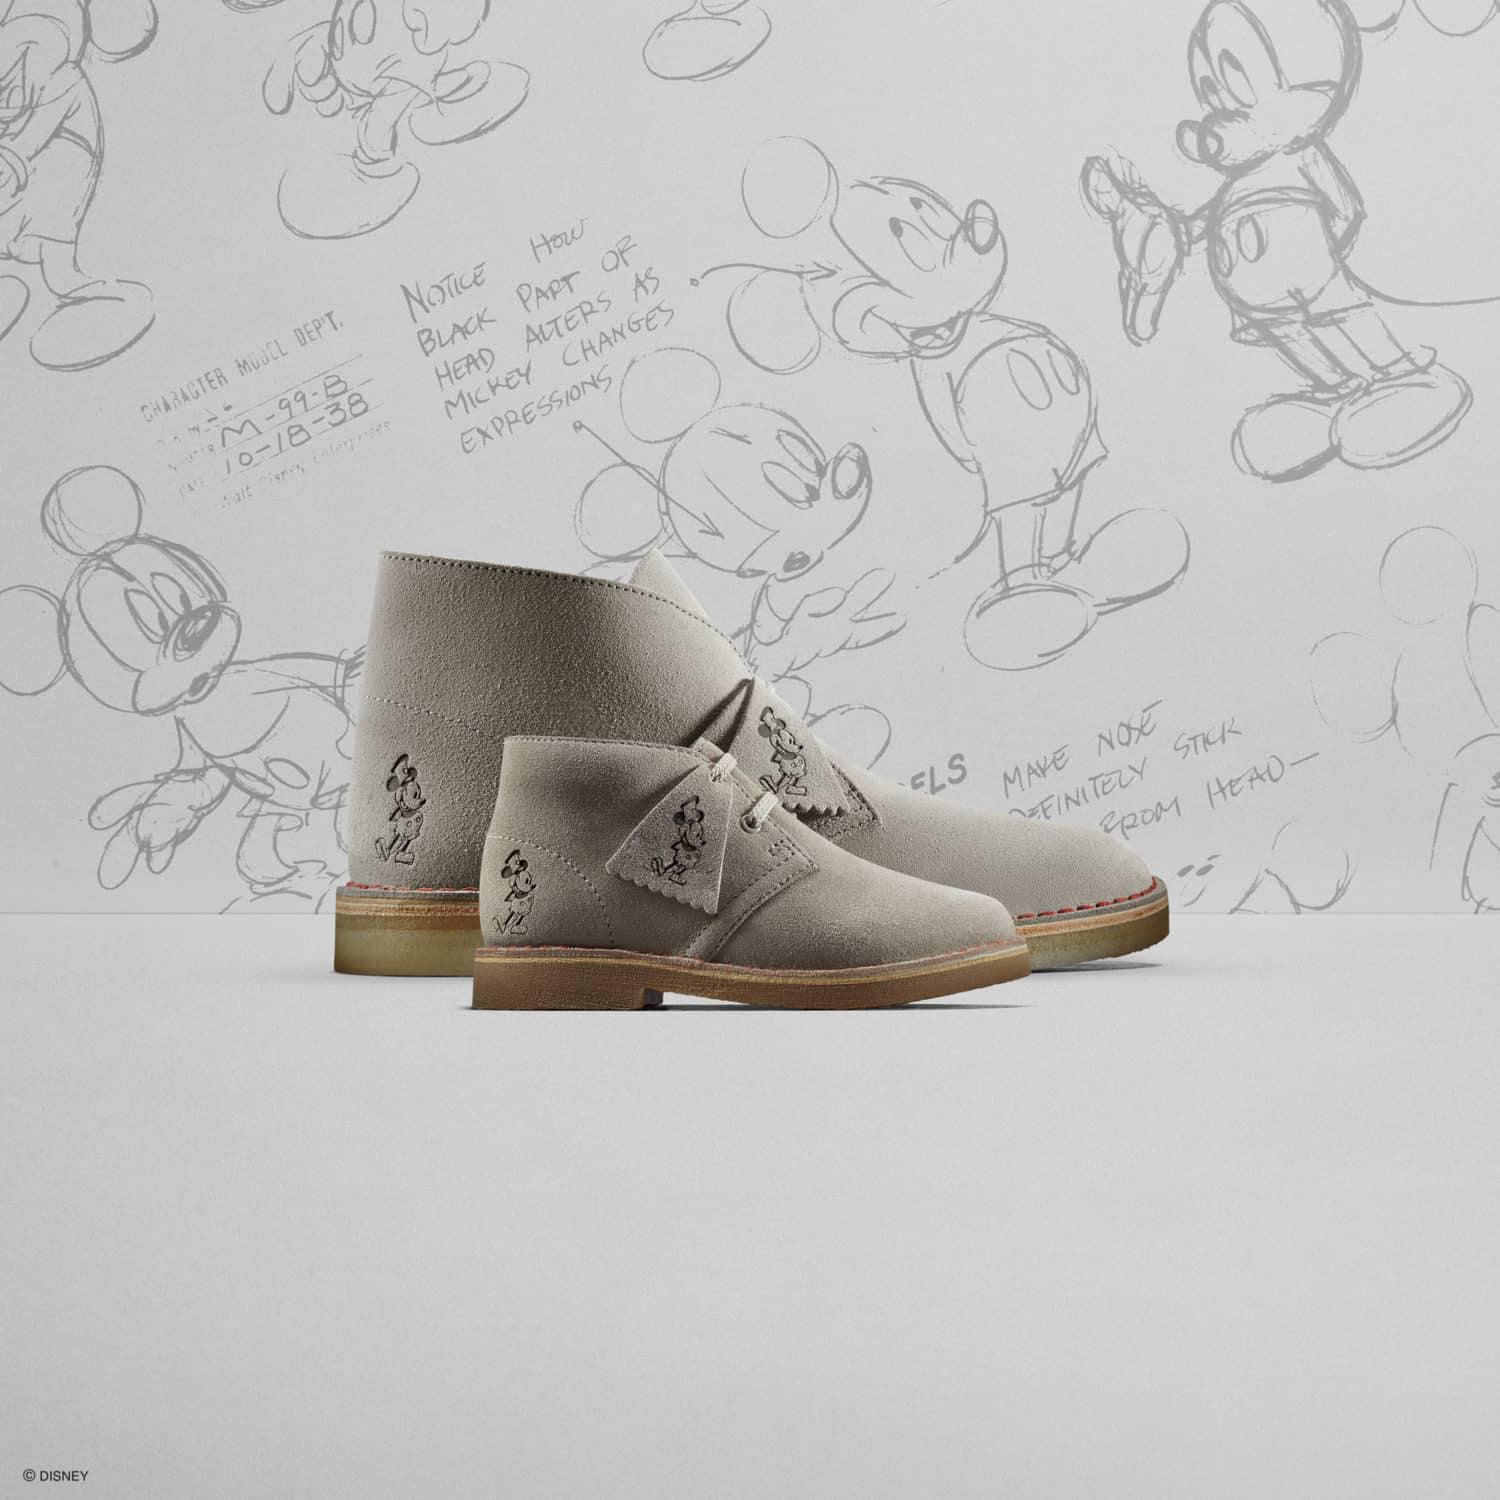 Clarks Desert Boot - Disney Mickey Mouse